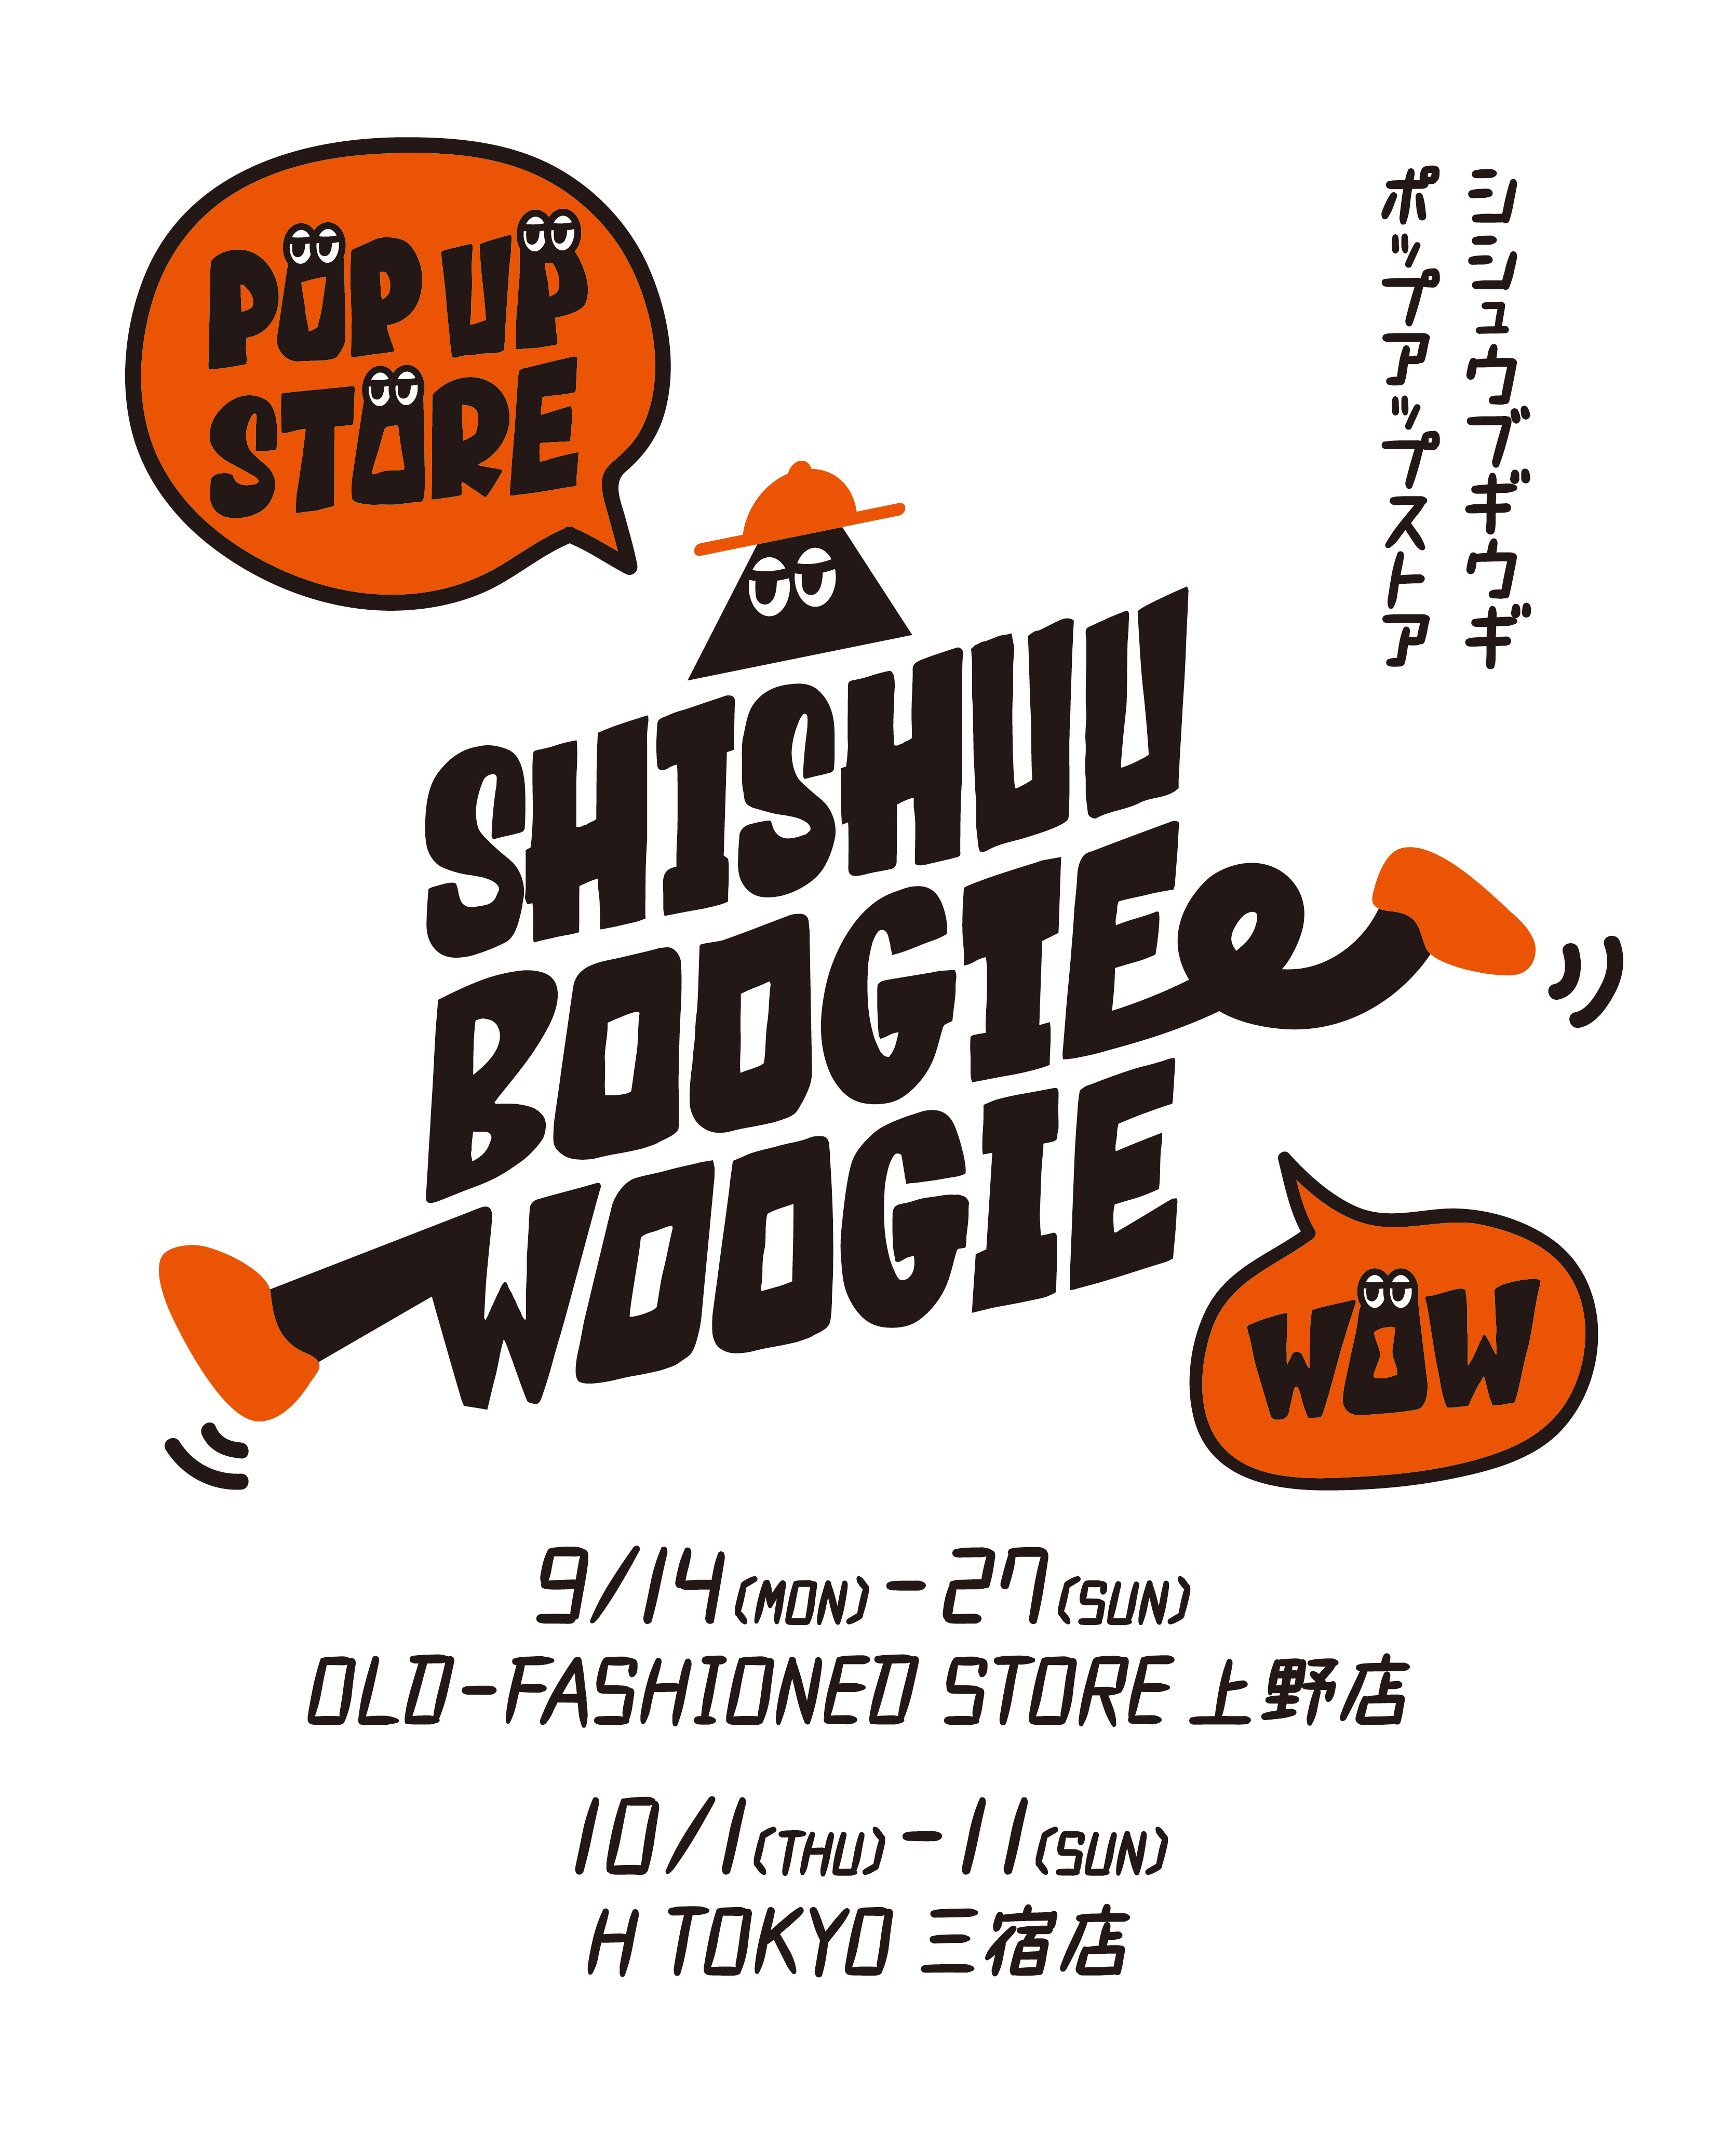 POP UP STORE at H TOKYO三宿店&OLD-FASHIONED STORE上野店